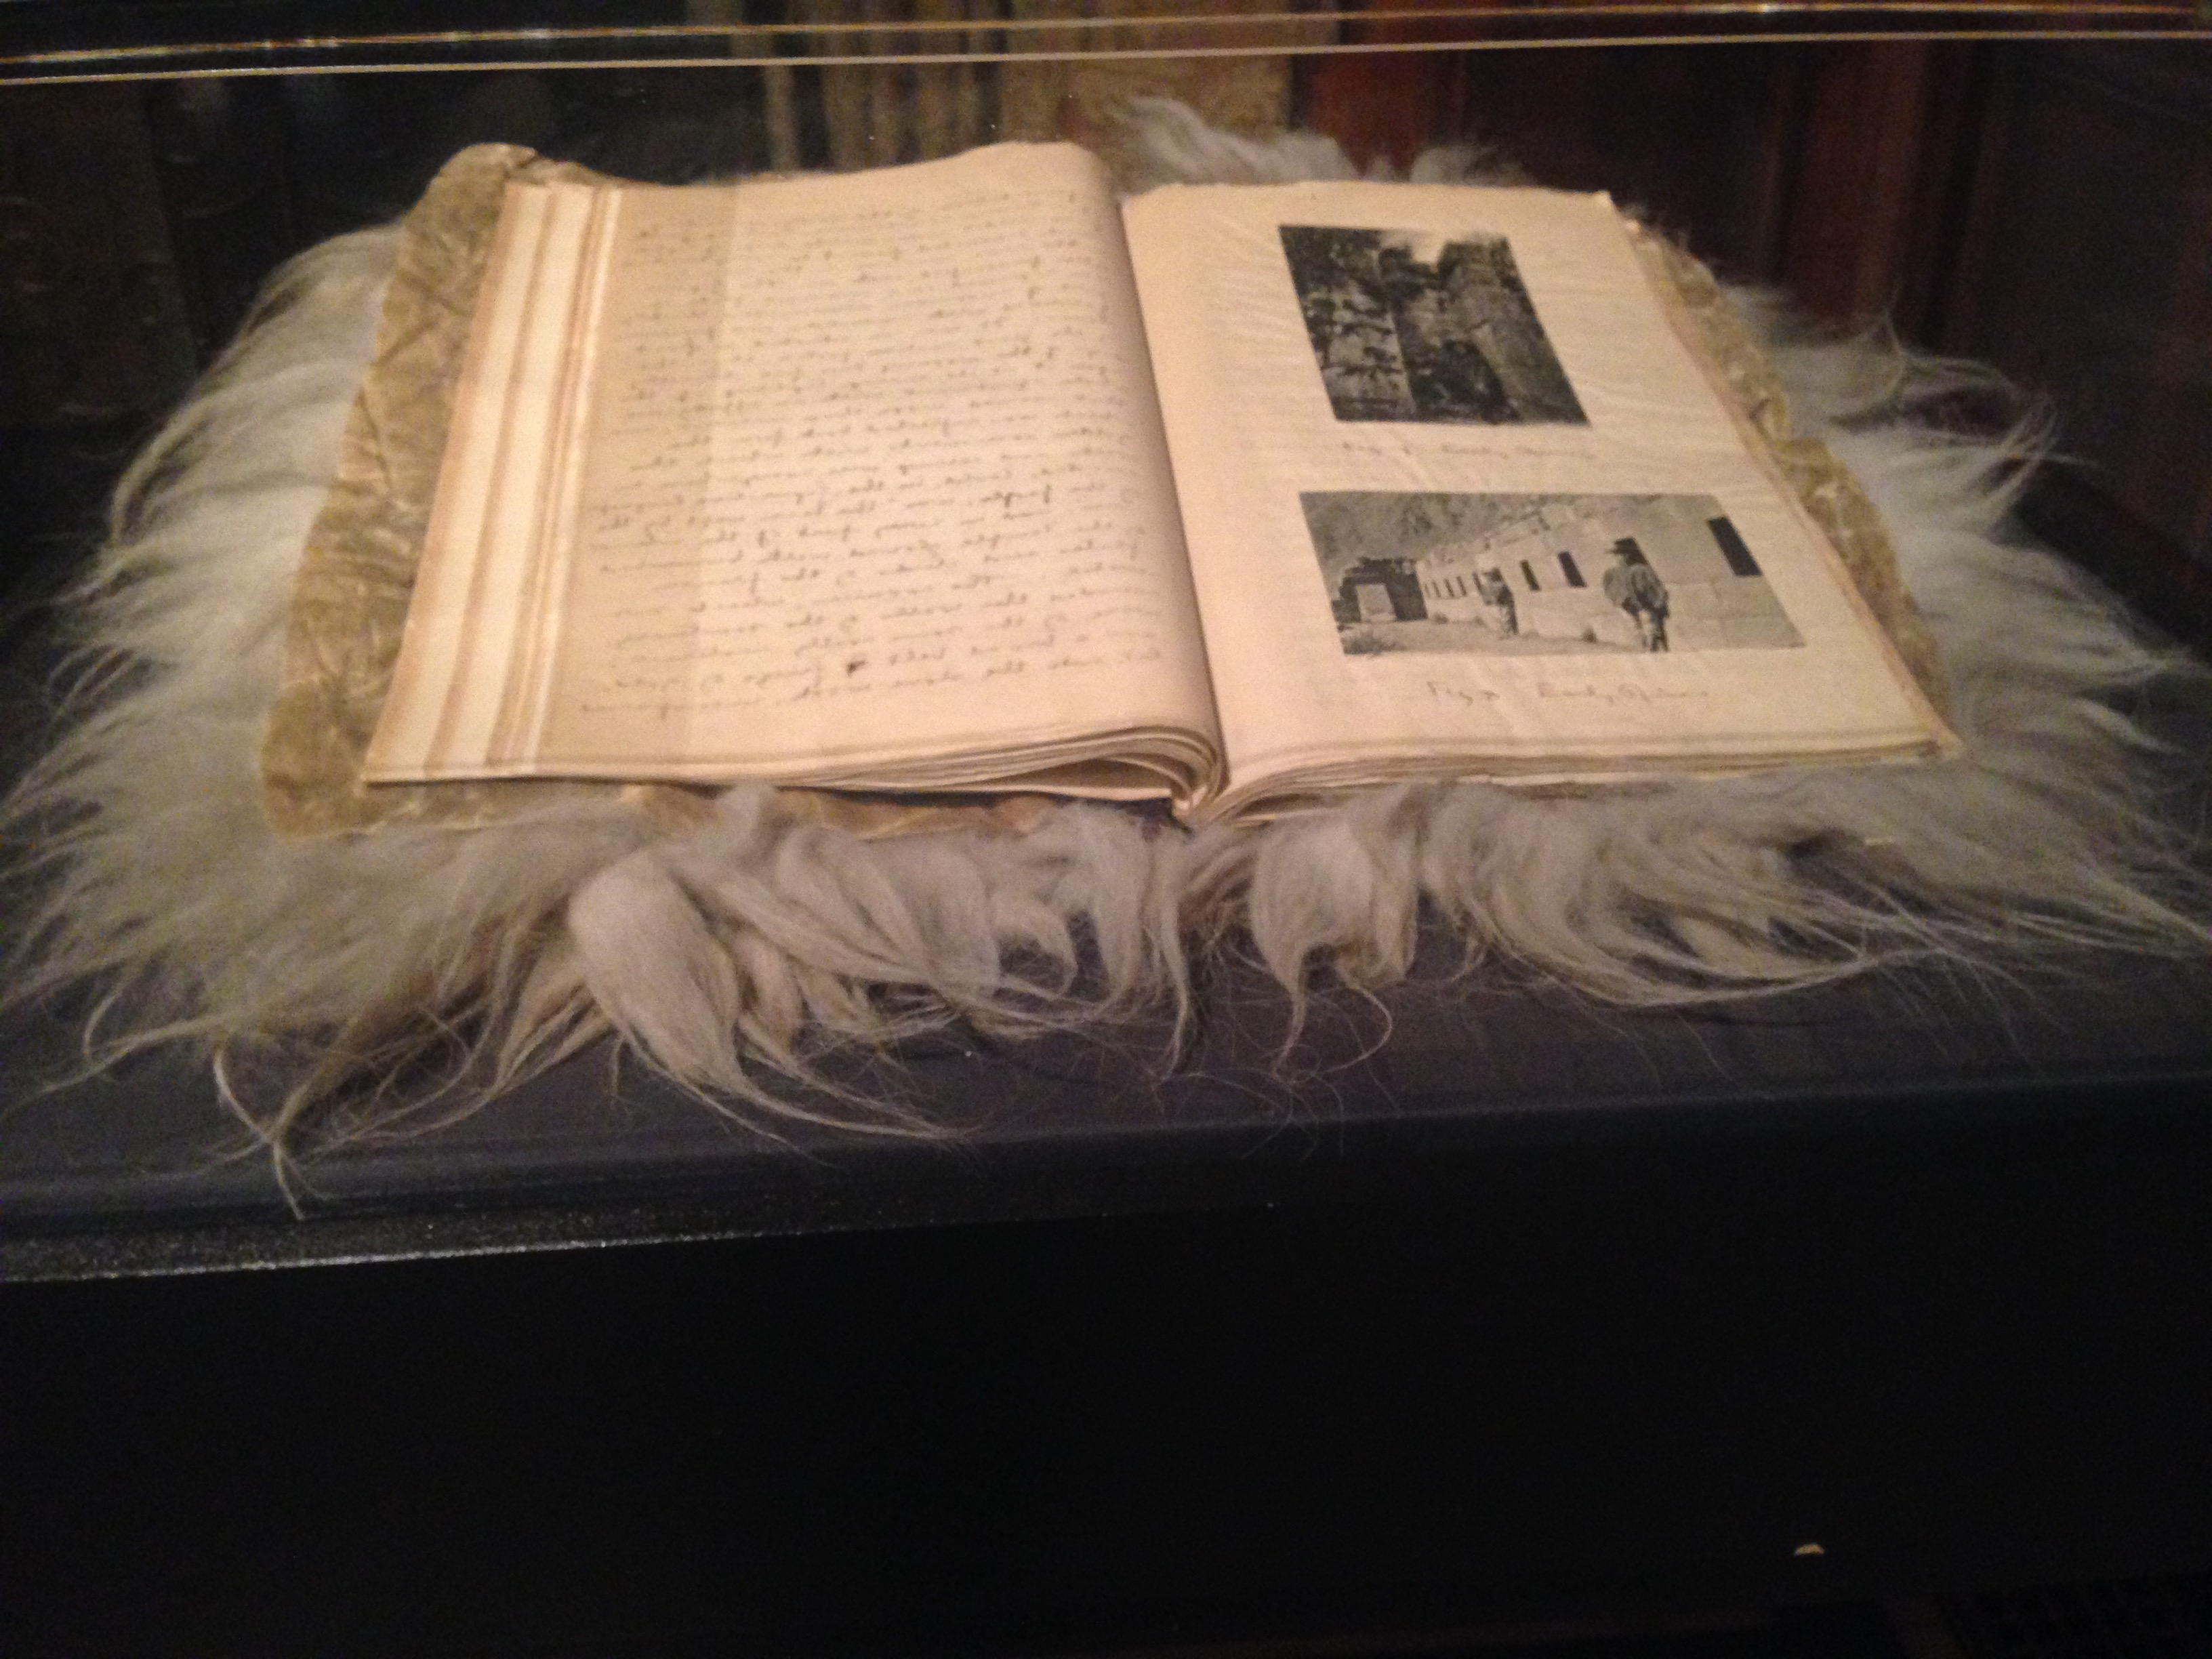 Among the genuinely curious things is collector William T. Taylor's Peruvian travel diary, bound in Llama skin.